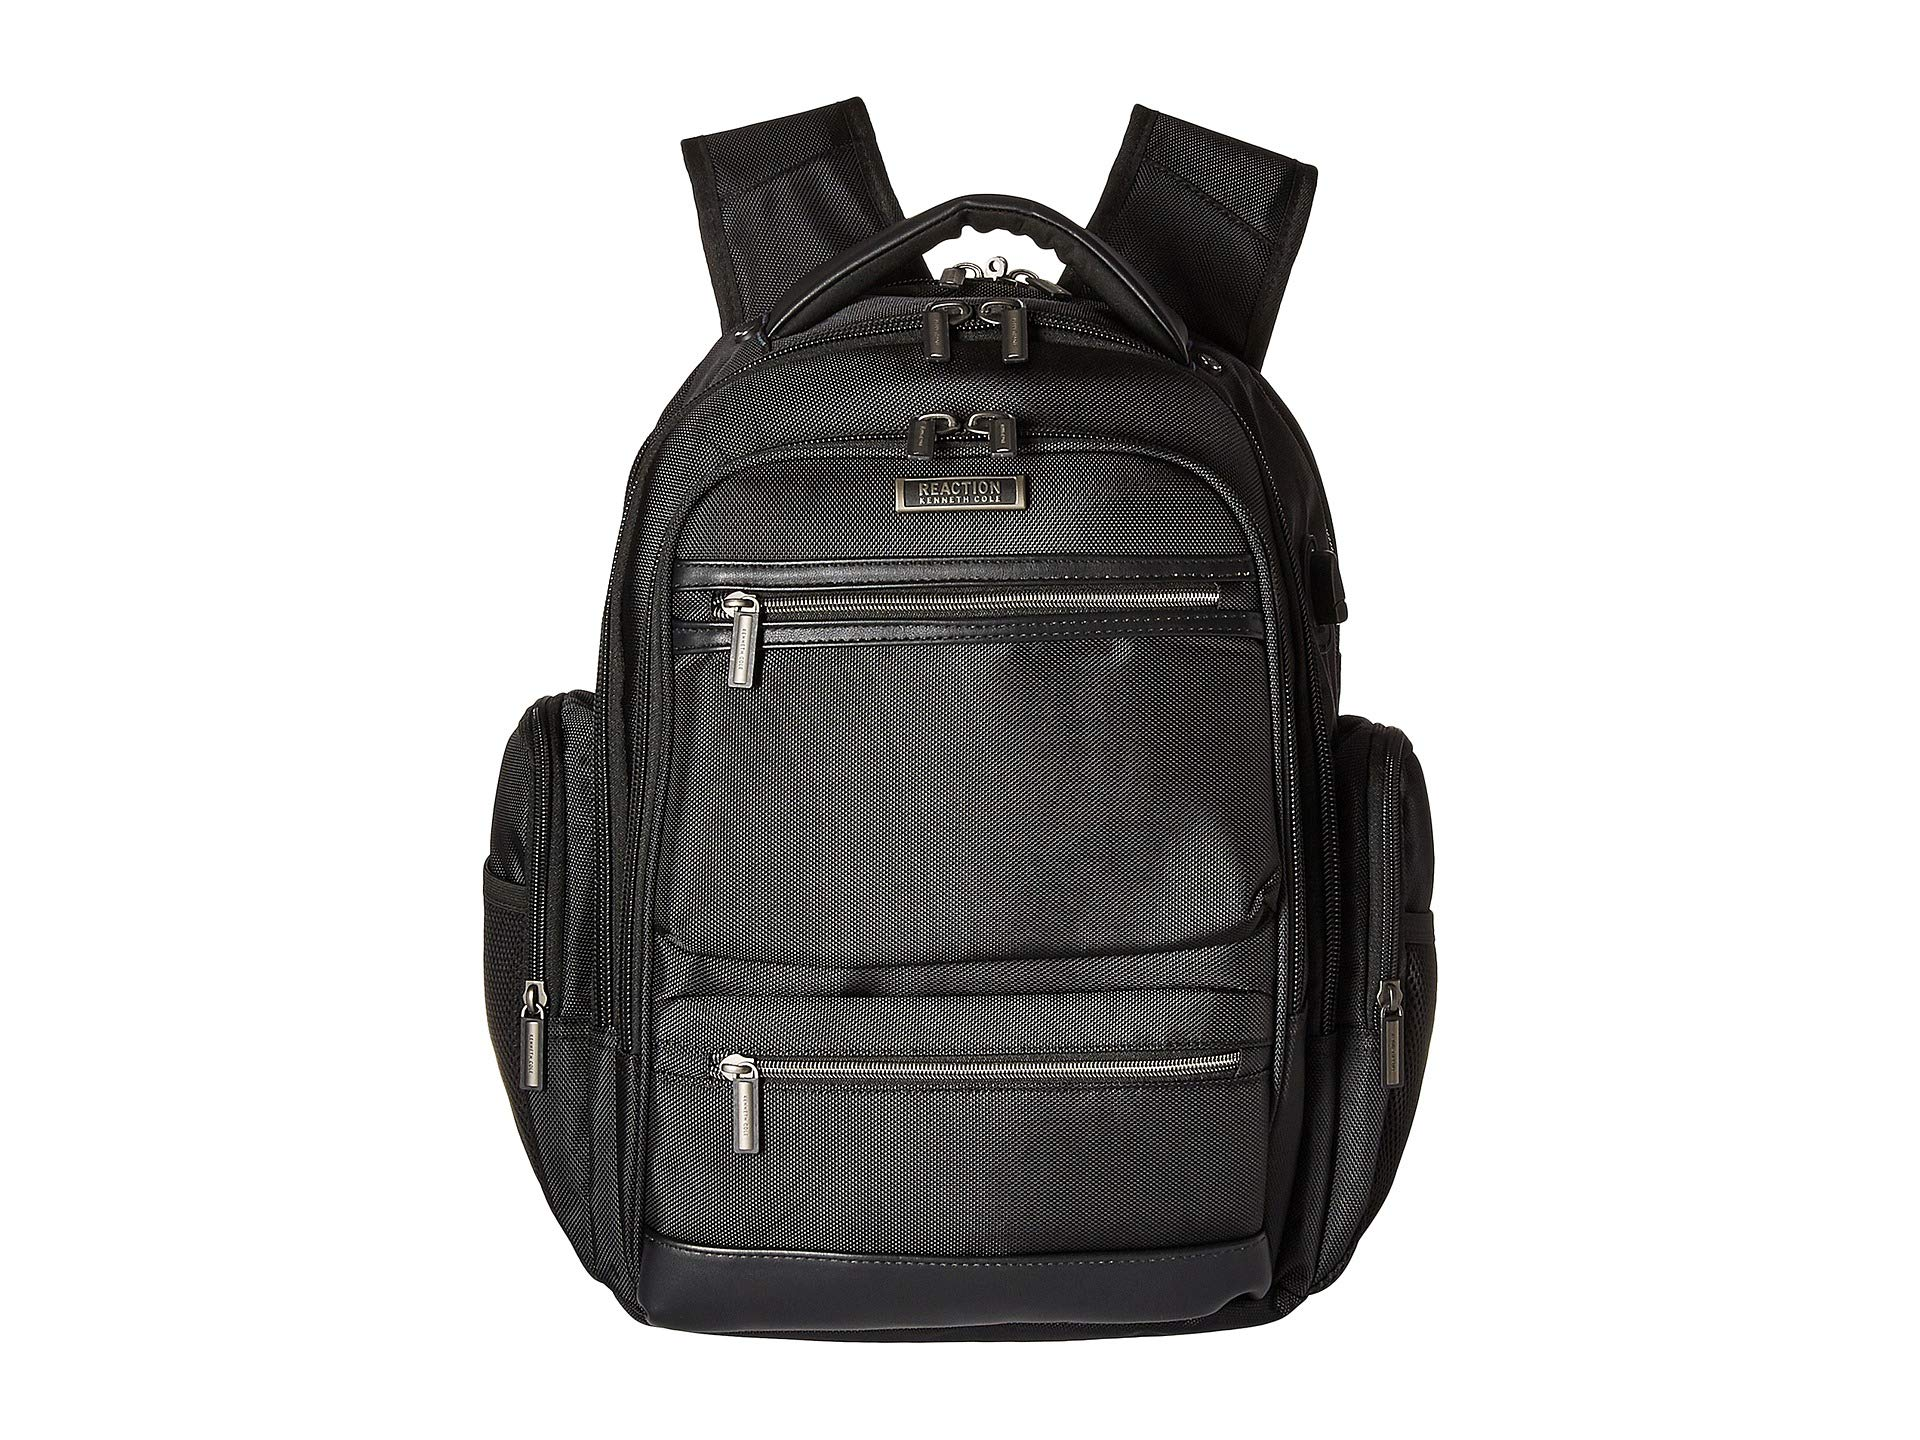 Backpack Black It Polyester Tech Cole Reaction Kenneth CUqXwPgn